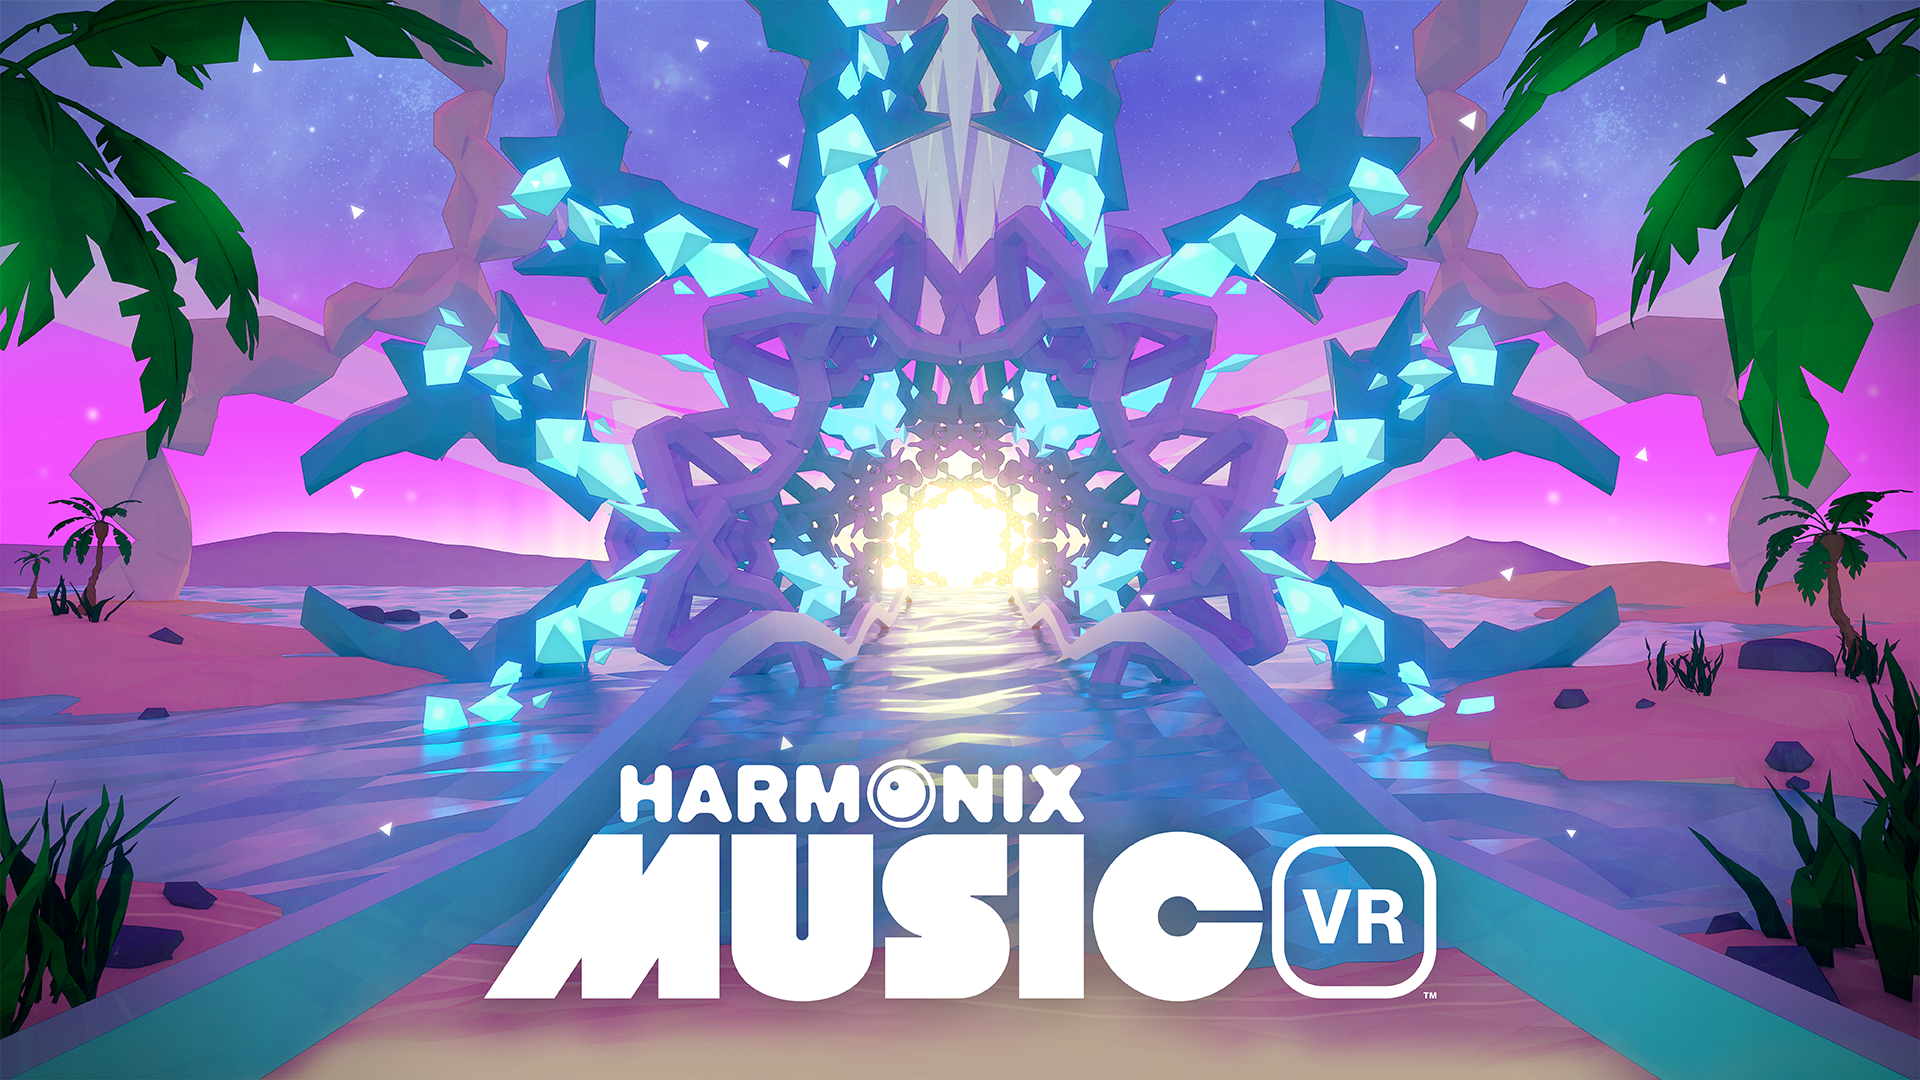 Harmonix Blog: Unlock Your Music Library With Harmonix Music VR!